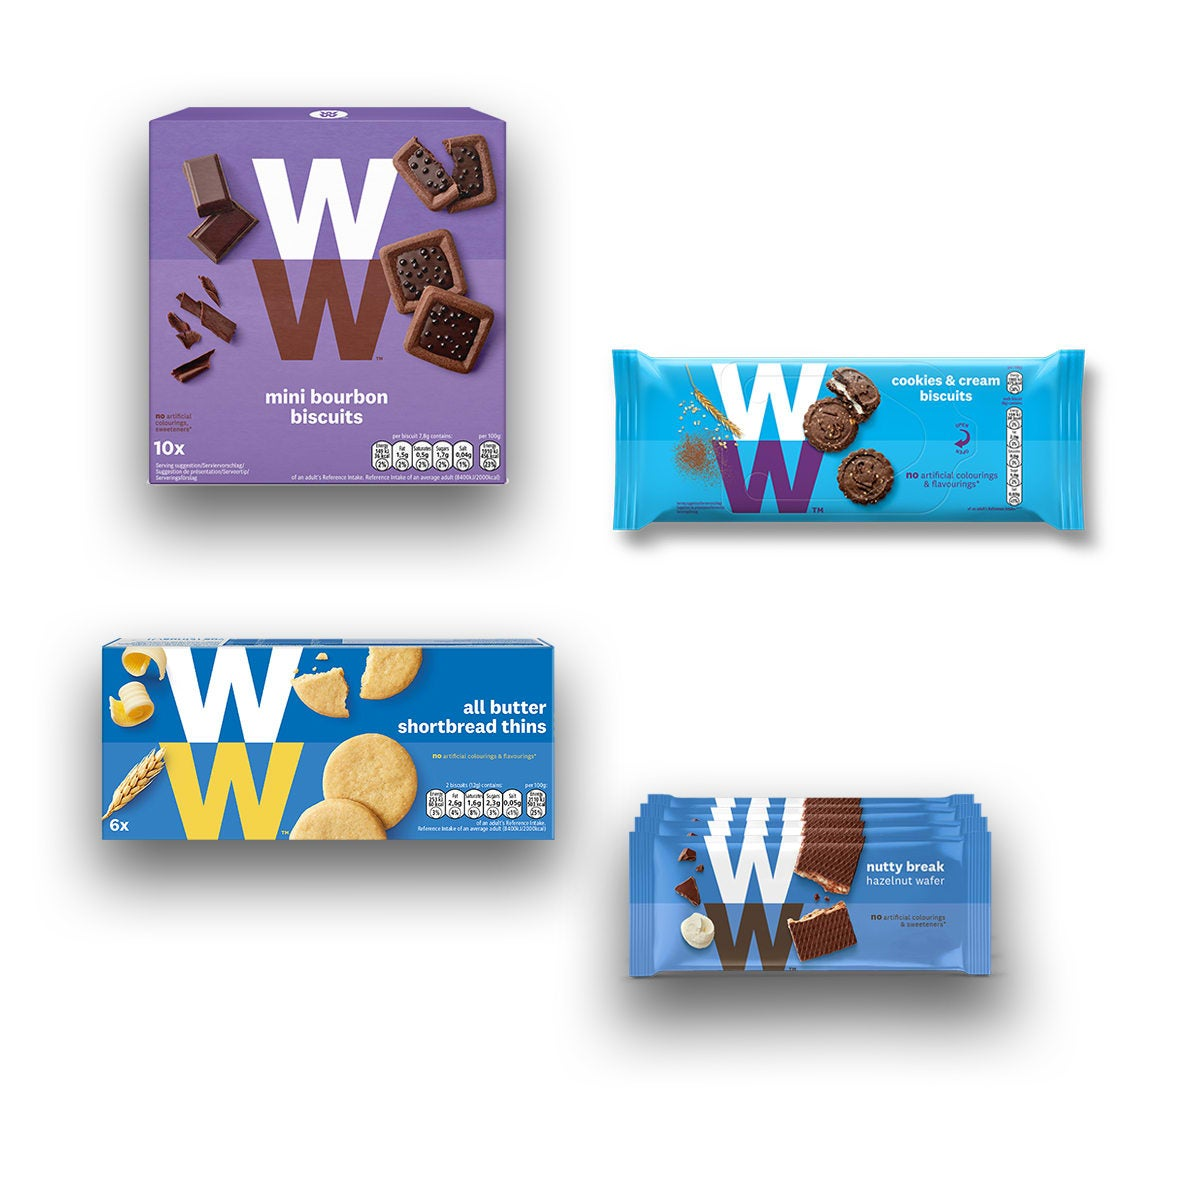 WW Biscuits Value Bundle, includes Shortbread Thins, Cookies and Cream Biscuits, Hazelnut Wafers, Mini Bourbon Biscuits